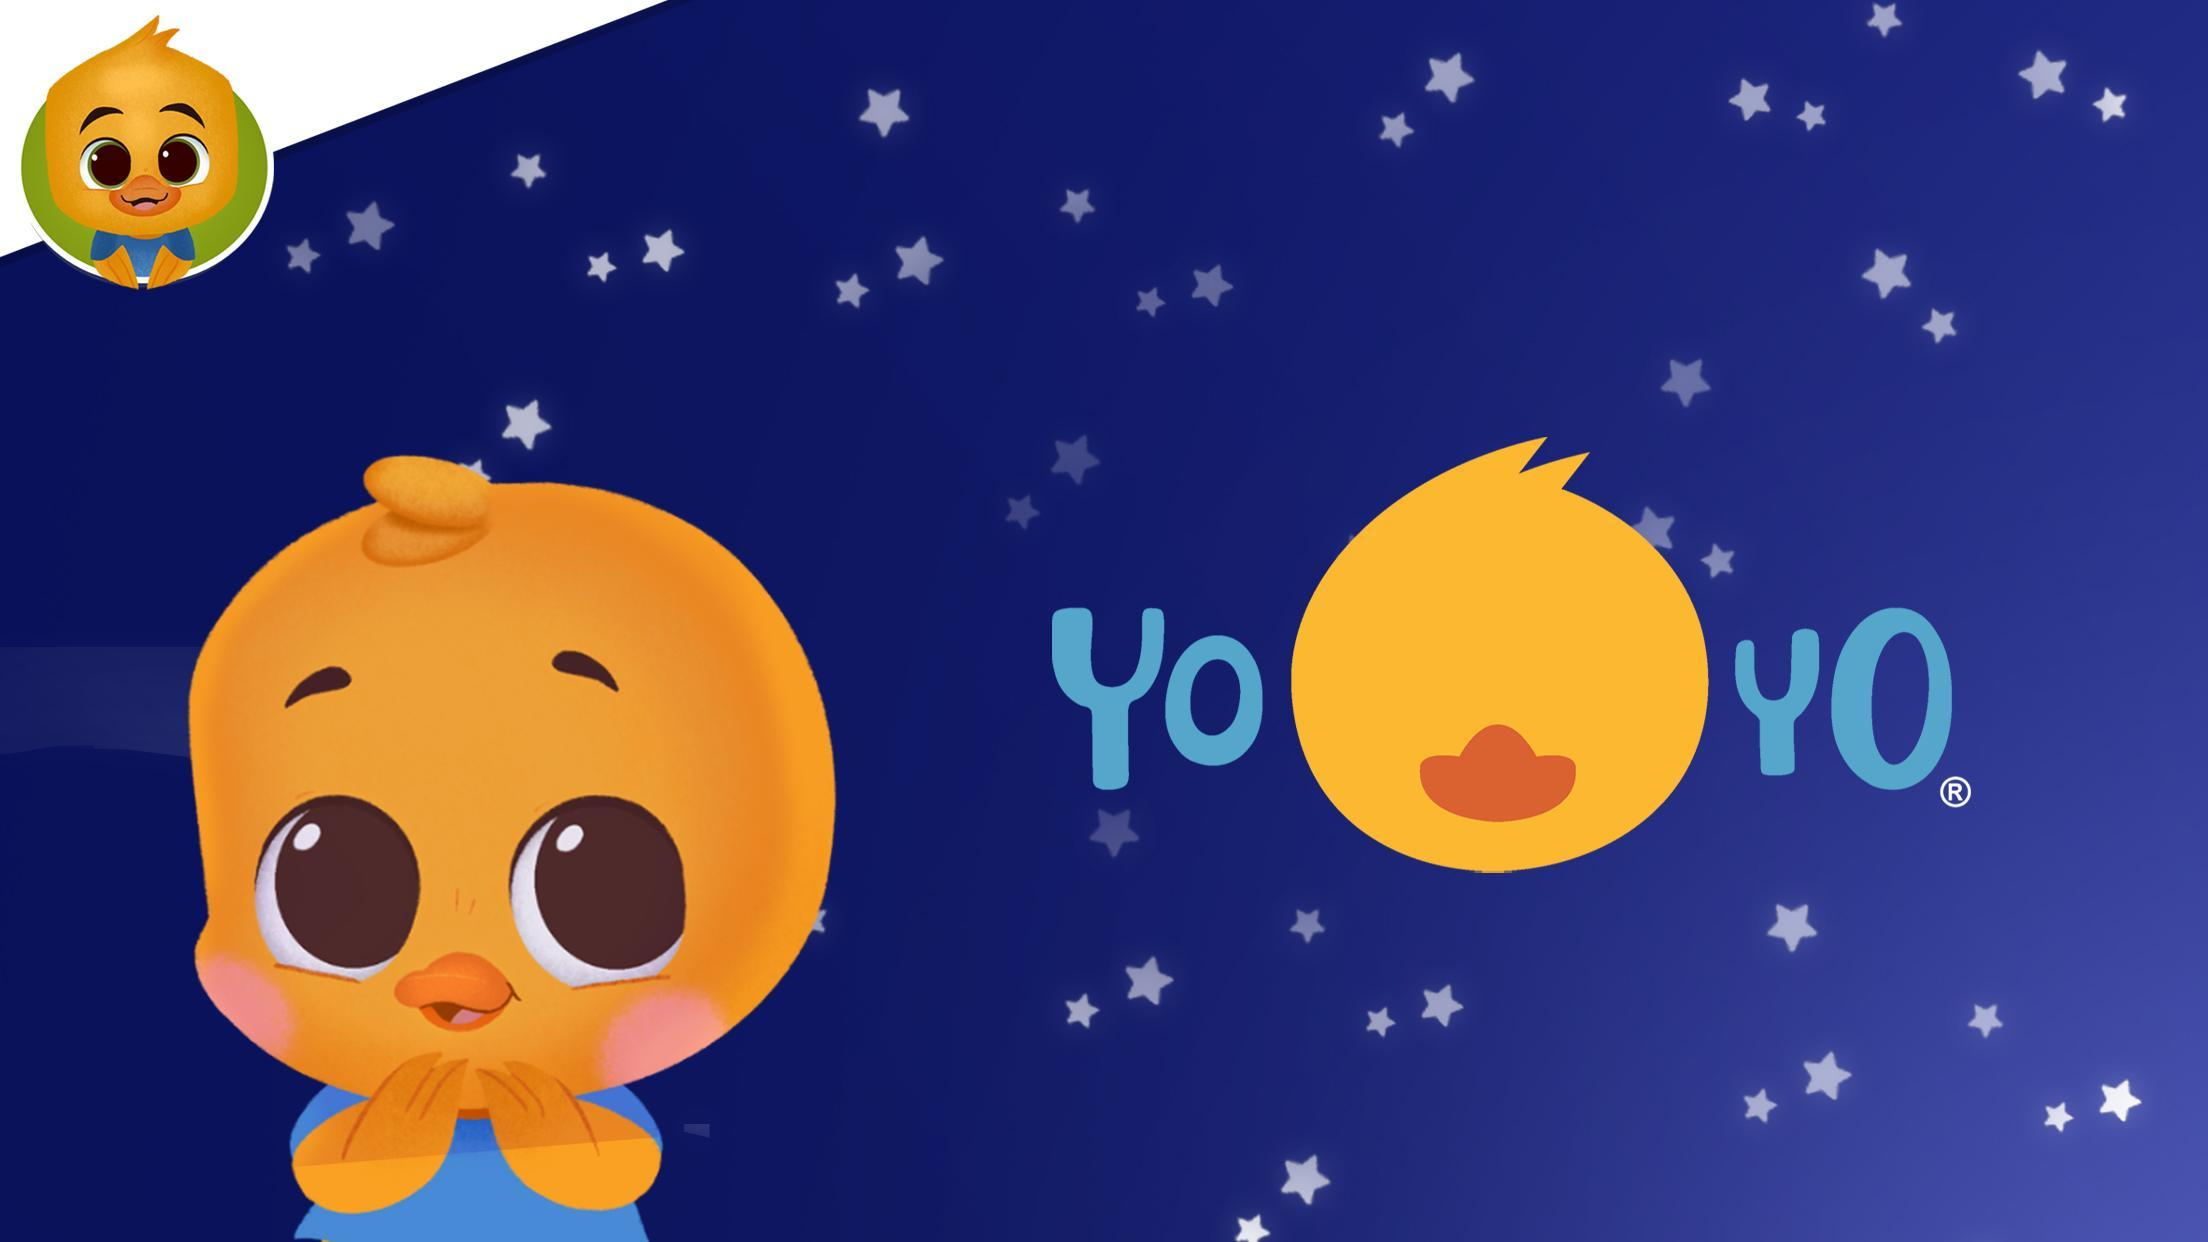 Carillon Ninna Nanna.Yoyo Carillon Ninna Nanna Per I Tuoi Bambini For Android